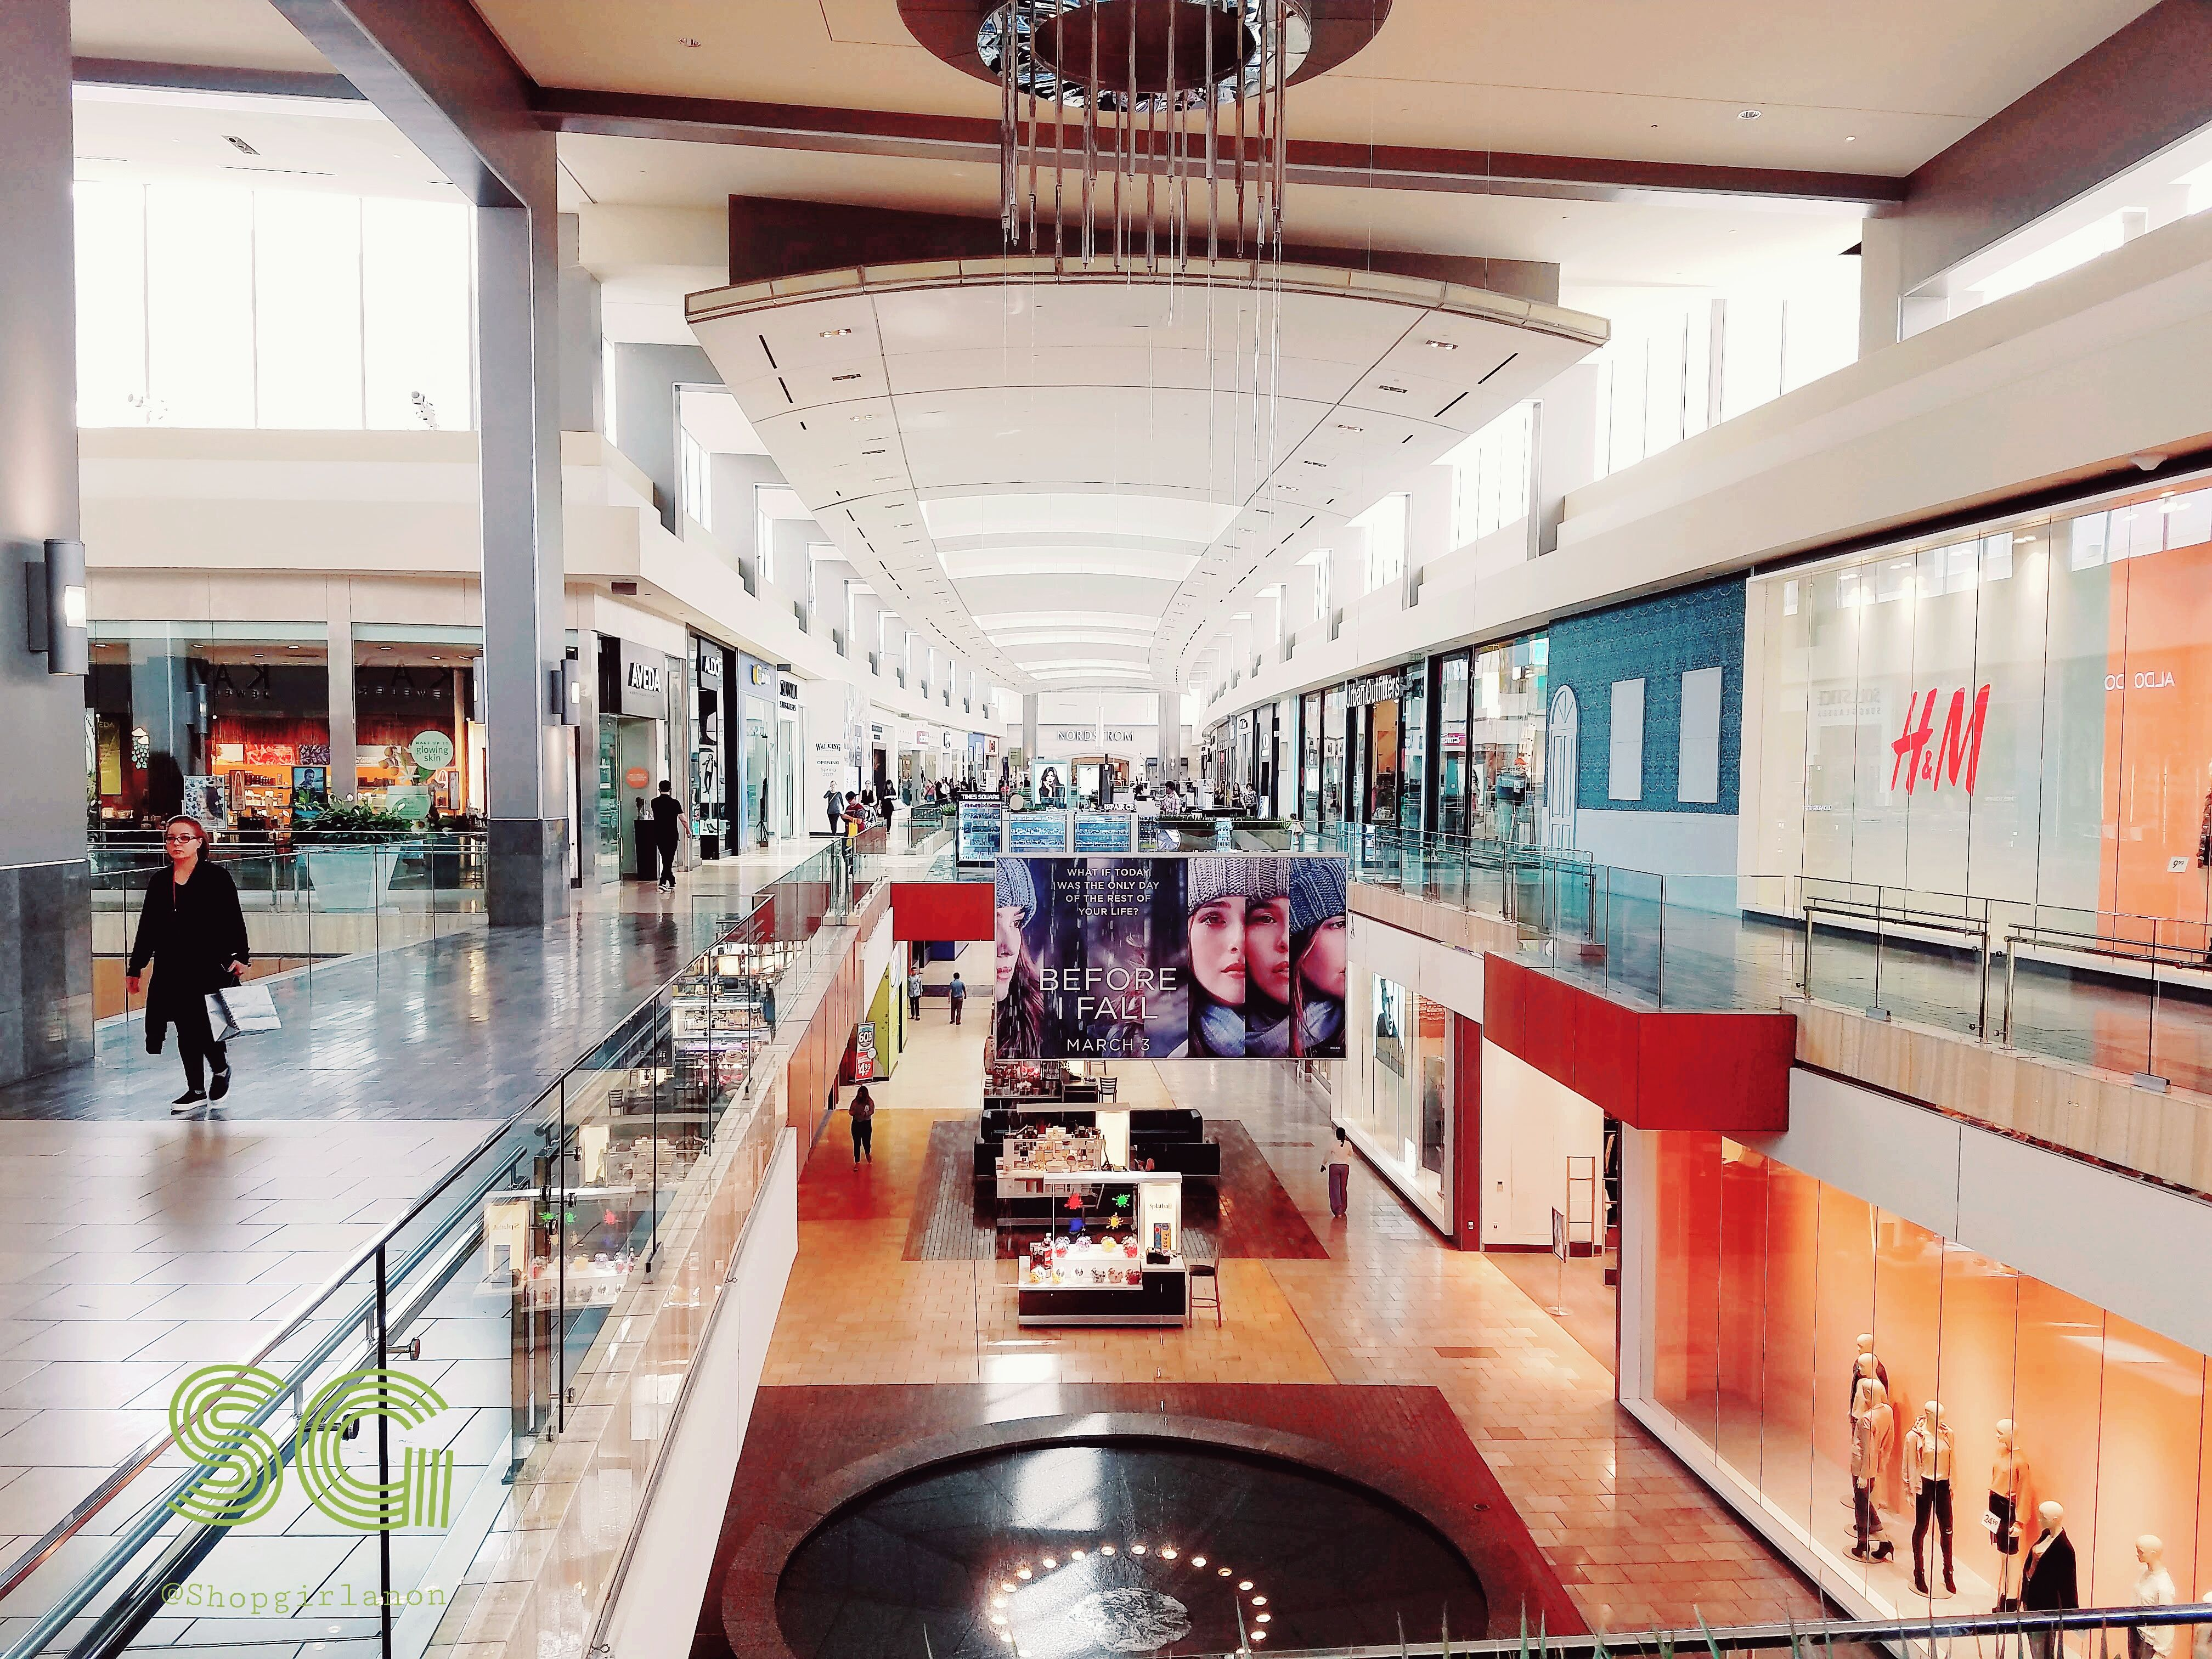 A 7 Step Guide To Mastering The Houston Galleria In A Day Houston Galleria Master Galleria